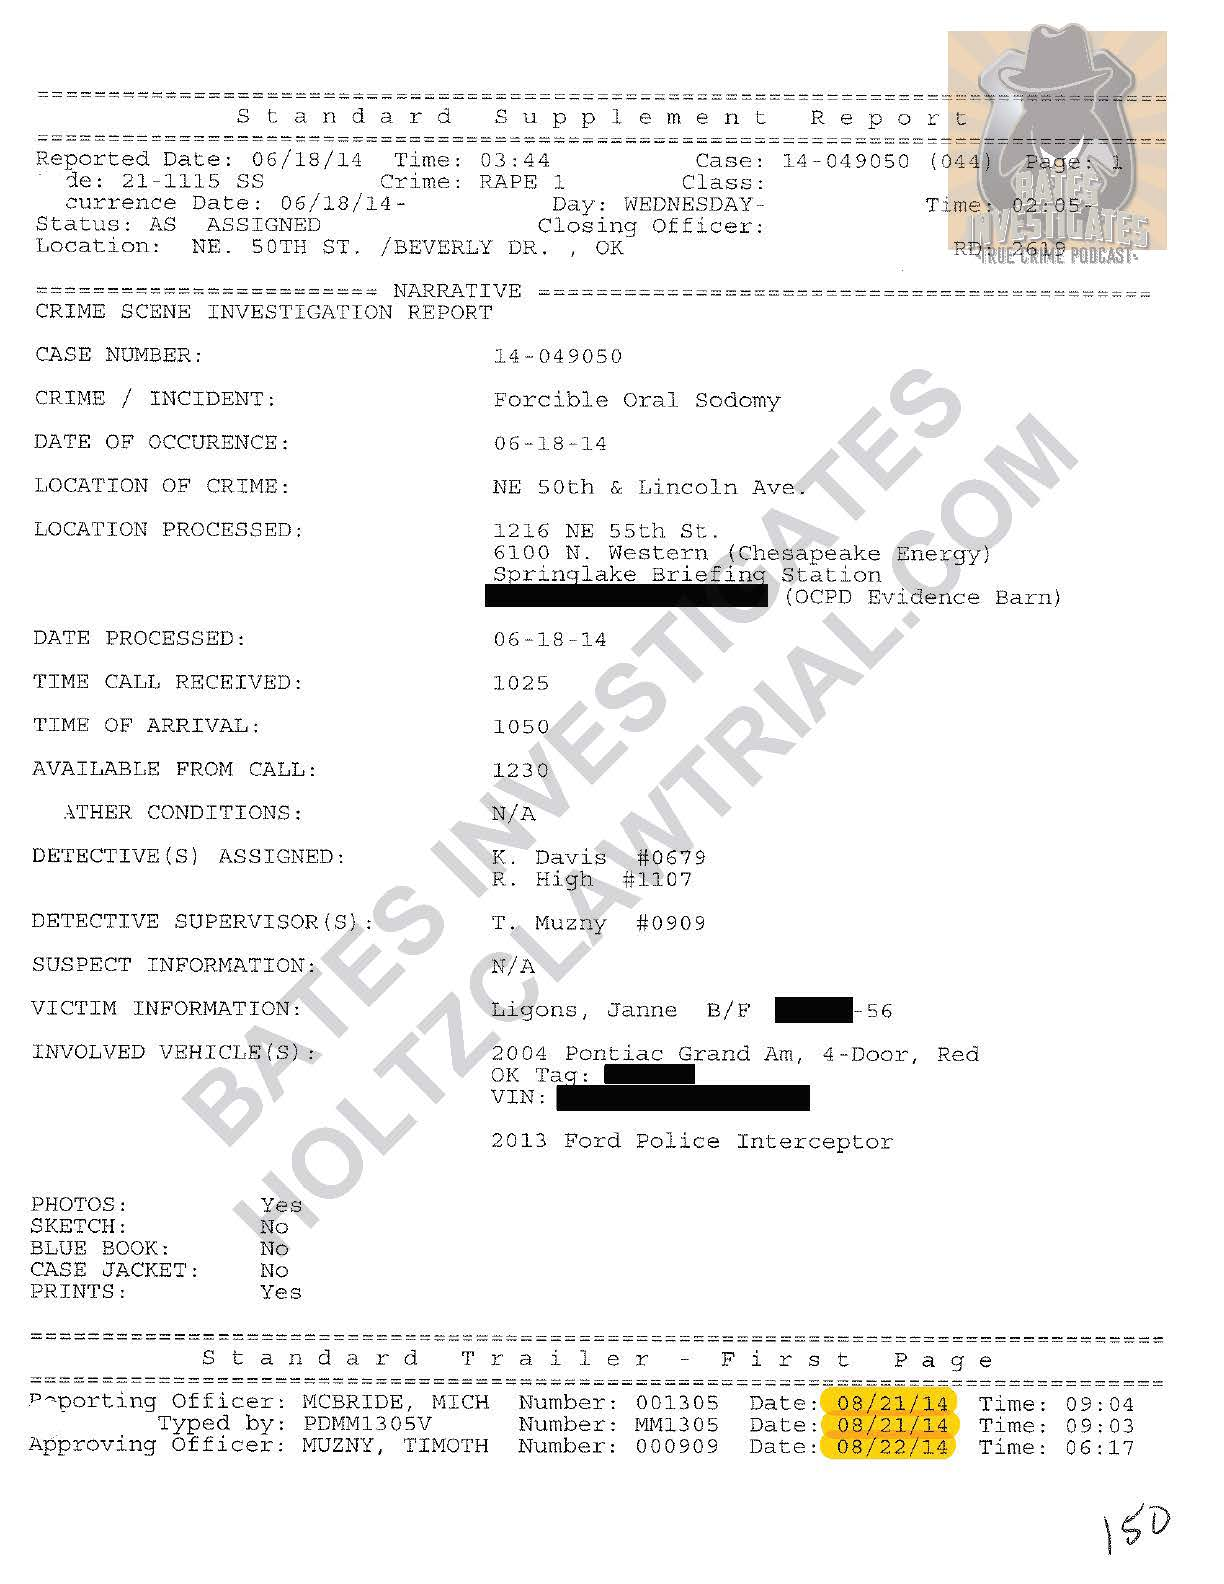 Holtzclaw - Ep02 - Police Reports Watermarked_Page_43.jpg